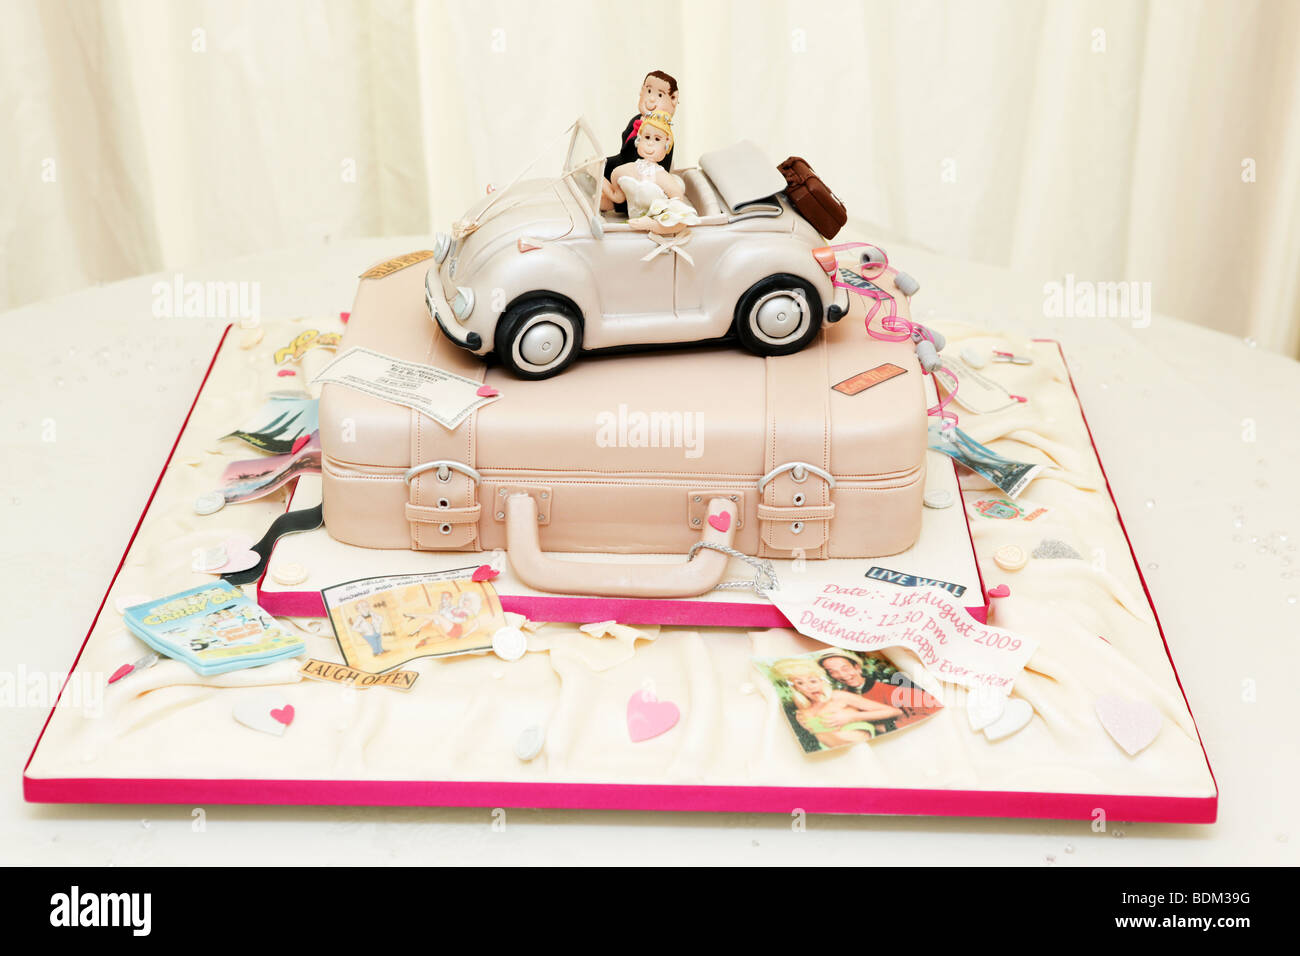 Unusual Different Wedding Cake Design Soft Top Volkswagen Beetle Car Stock Photo Alamy